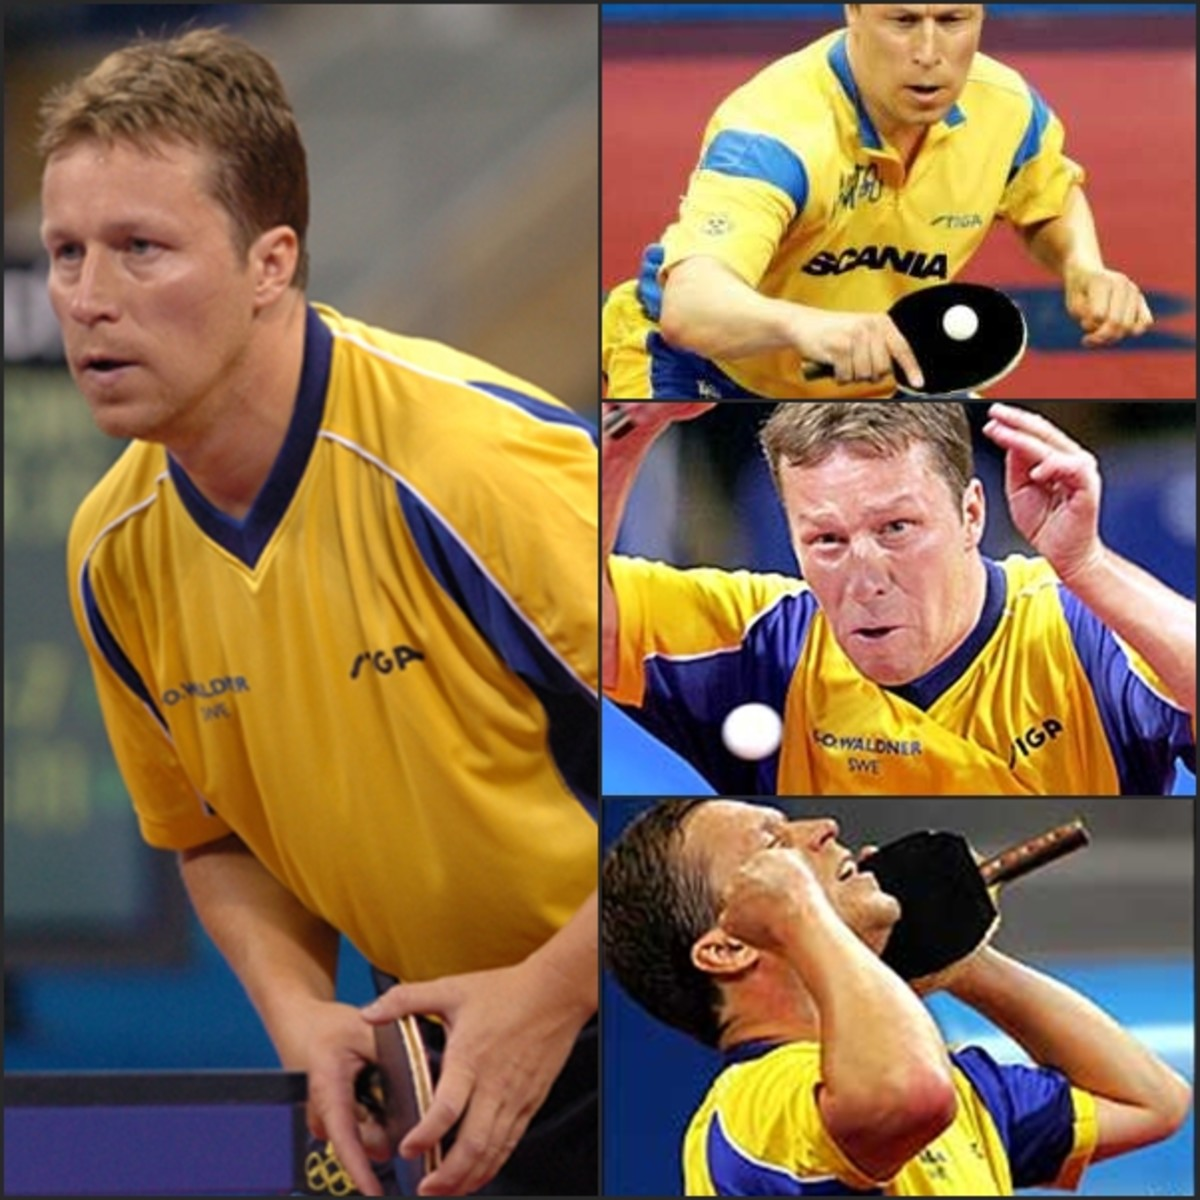 """Jan-Ove Waldner of Sweden is known as """"the Mozart of table tennis"""" and is a legend in his native Sweden as well as in China, where he is known as - """"Old Wal"""" - undeniably the greatest table tennis player of all time."""